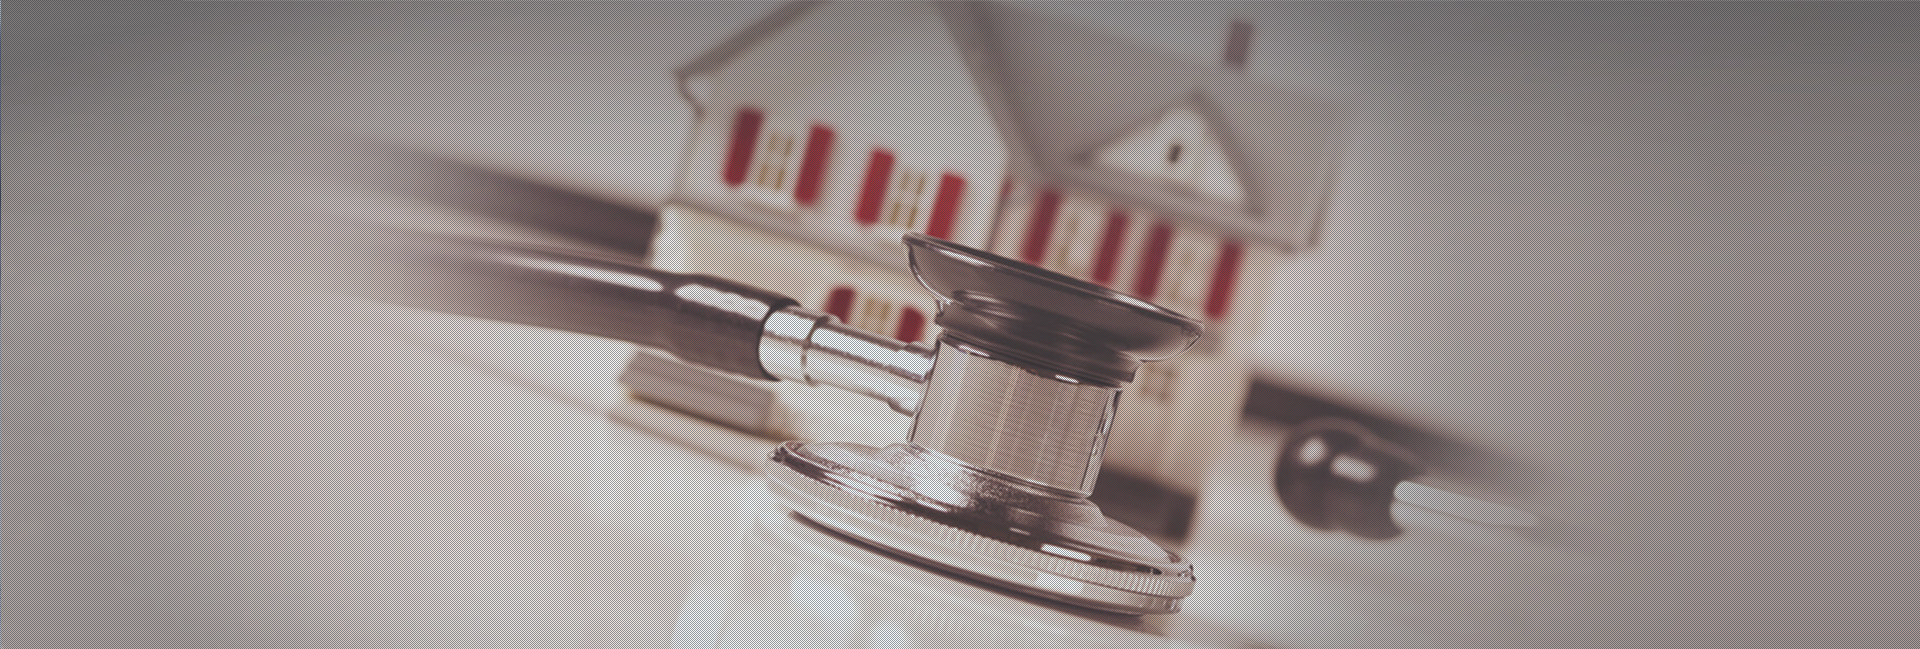 Diagnostic immobilier Longuenesse